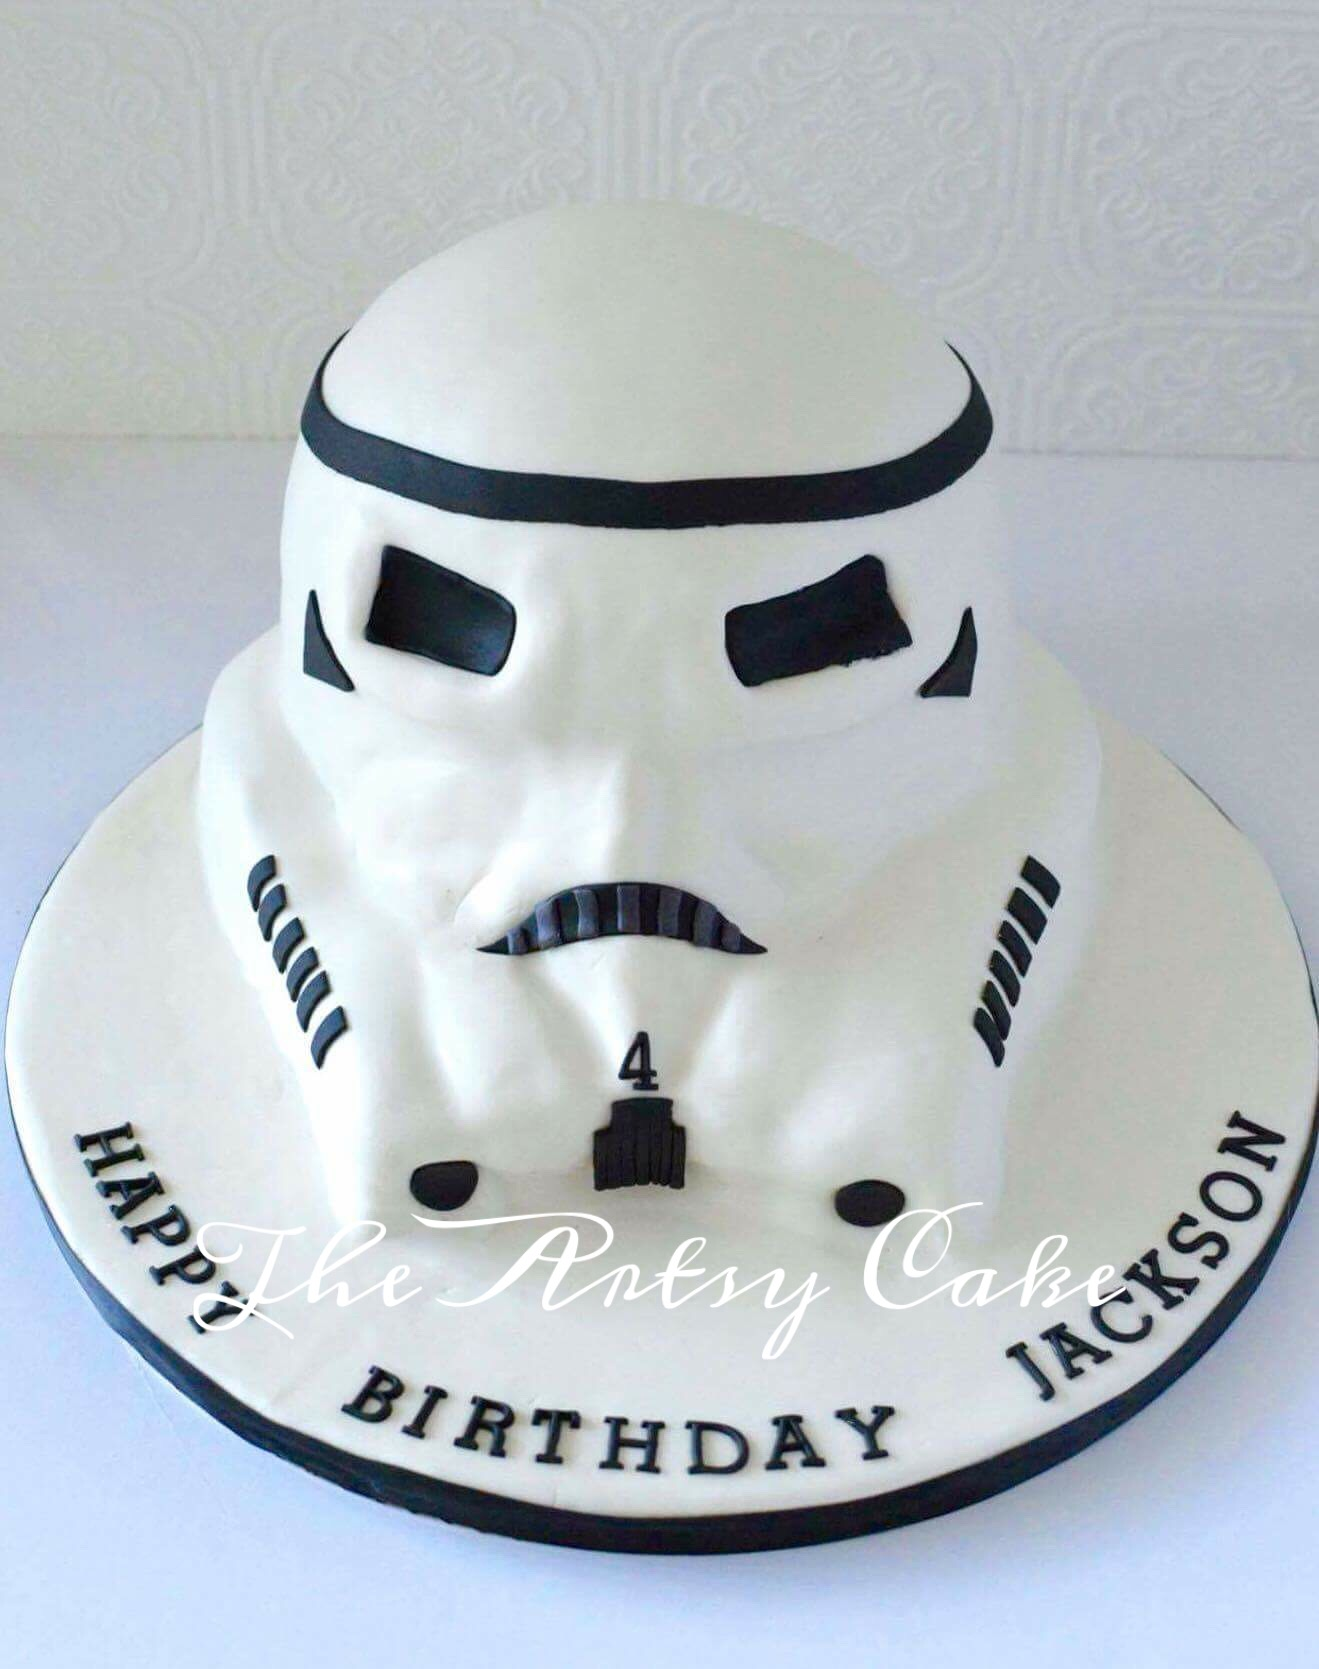 Stormtrooper sculpted cake